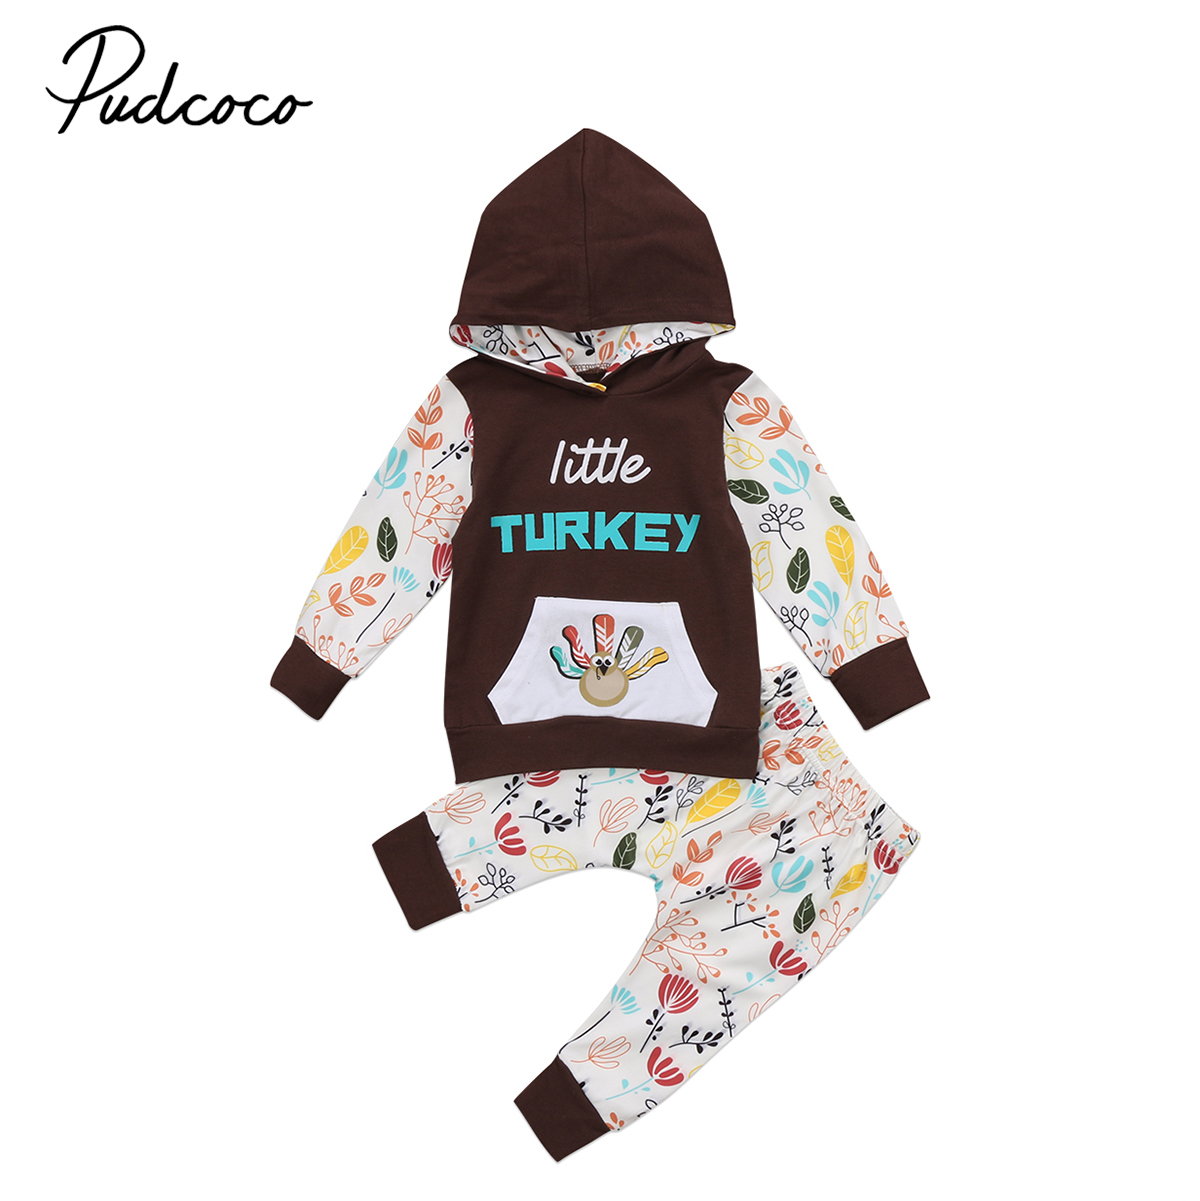 Infant Autumn Thanksgiving Outfits Kids Boys Girls Warm Hoodie+Long Pants Clothes 0-24M худи boys hoodie